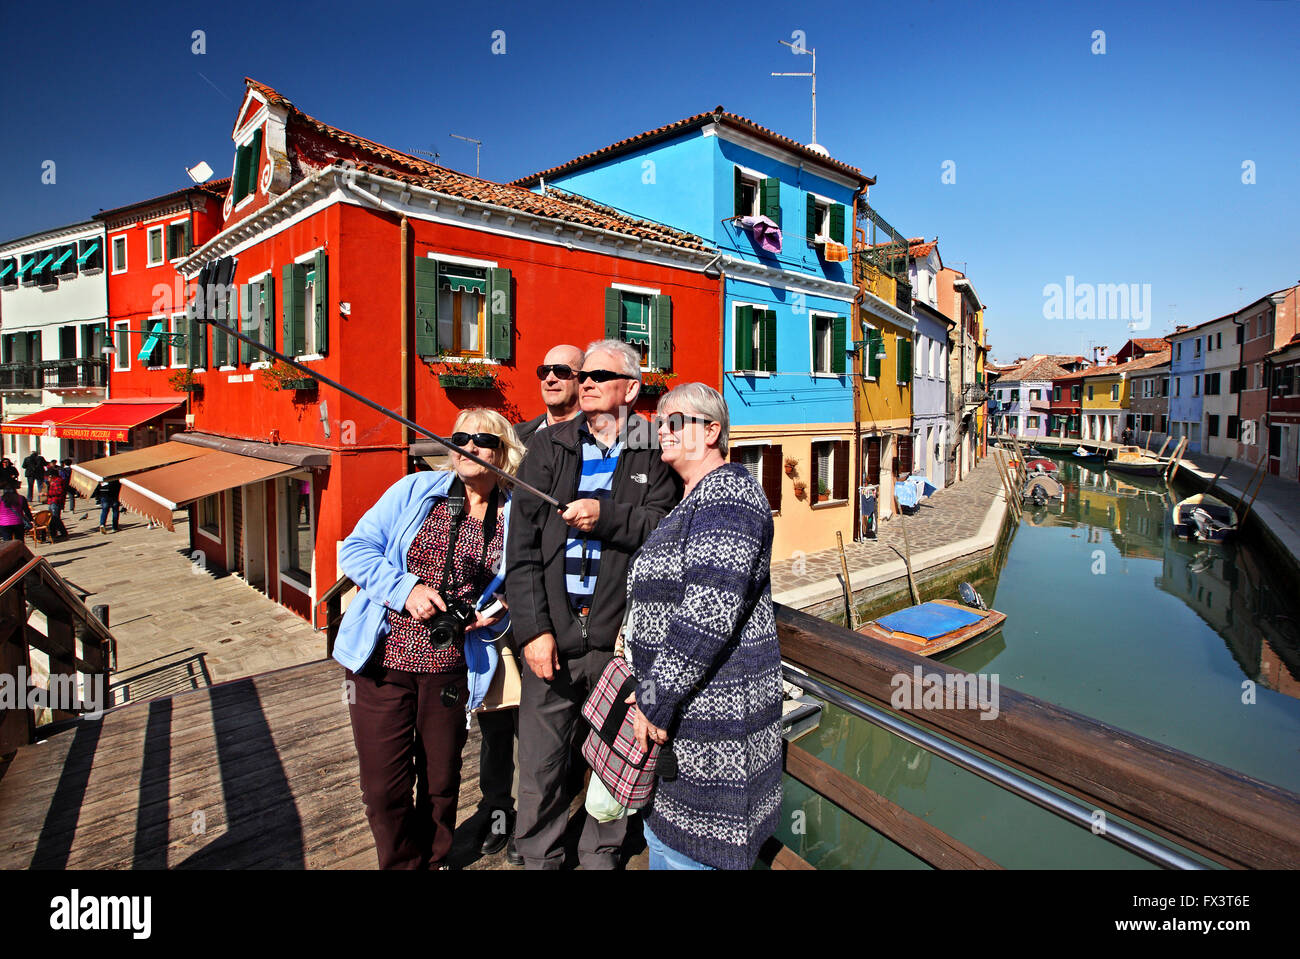 Colorful burano italy burano tourism -  Selfie In Front Of Colorful Houses Of Picturesque Burano Island Venice Veneto